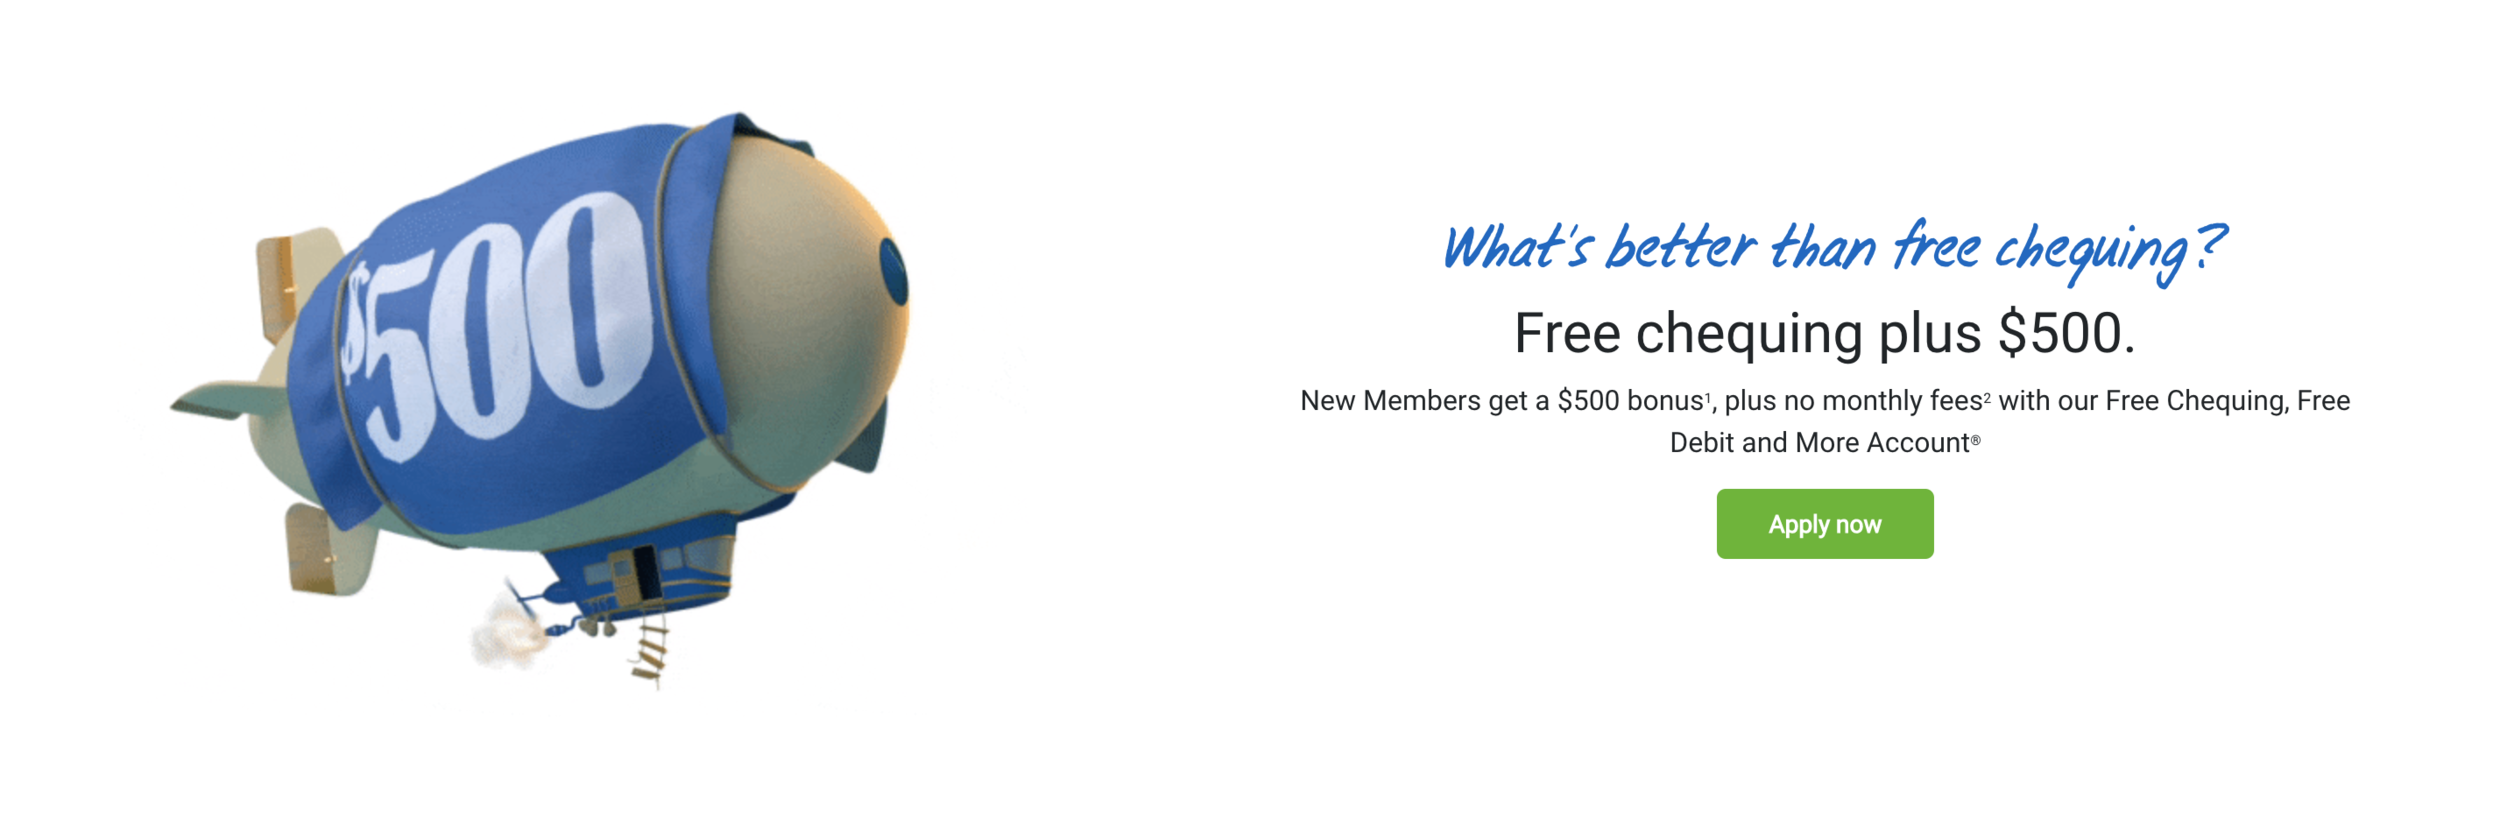 Coast Capital Free Chequing, Free Debit and More Account $500 Bonus Offer